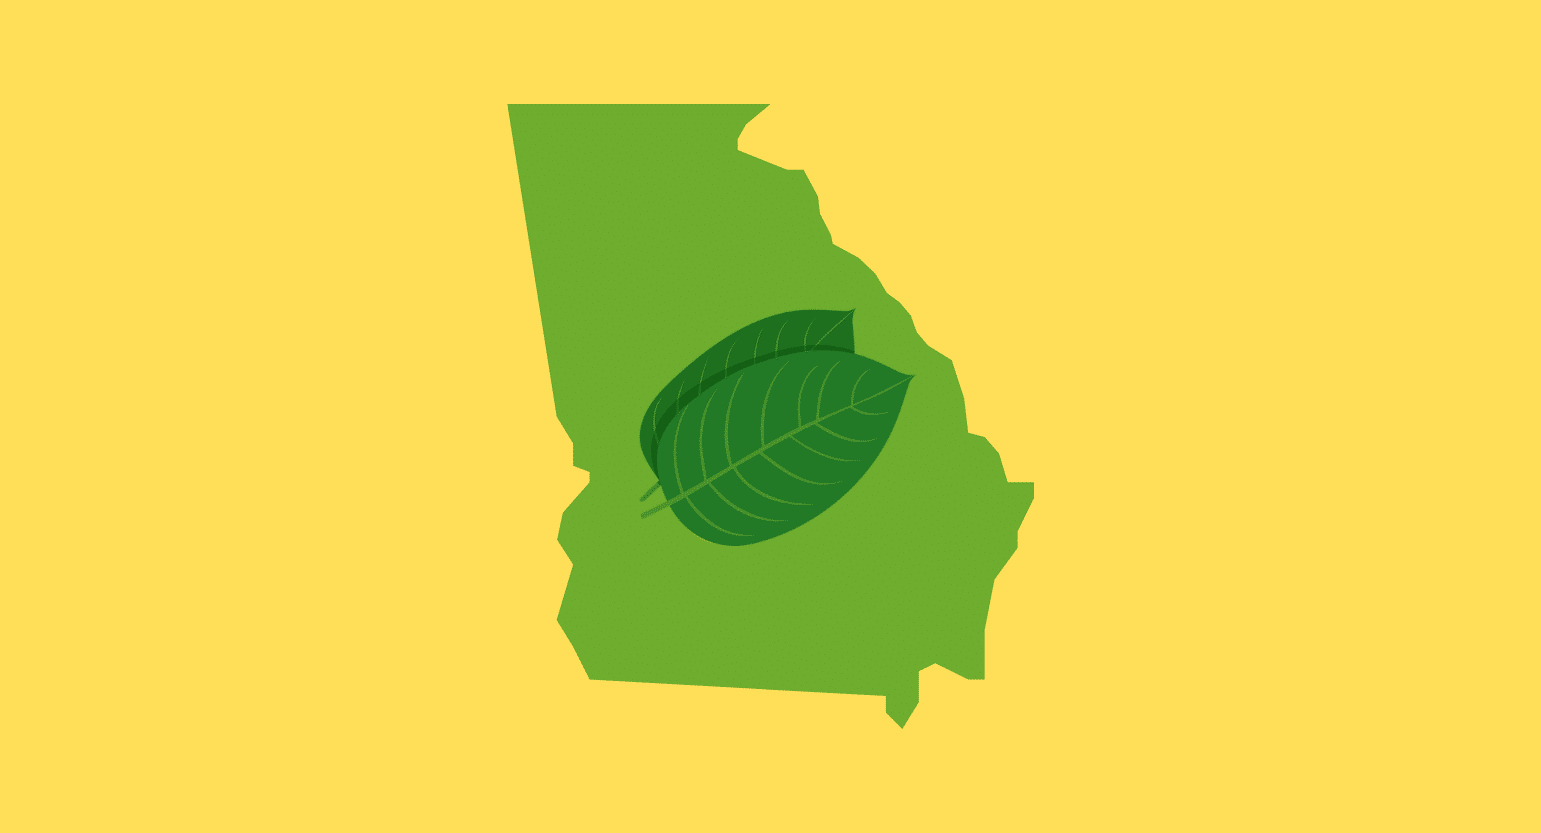 Where to Buy Kratom in Georgia: Is It Legal & Safe?